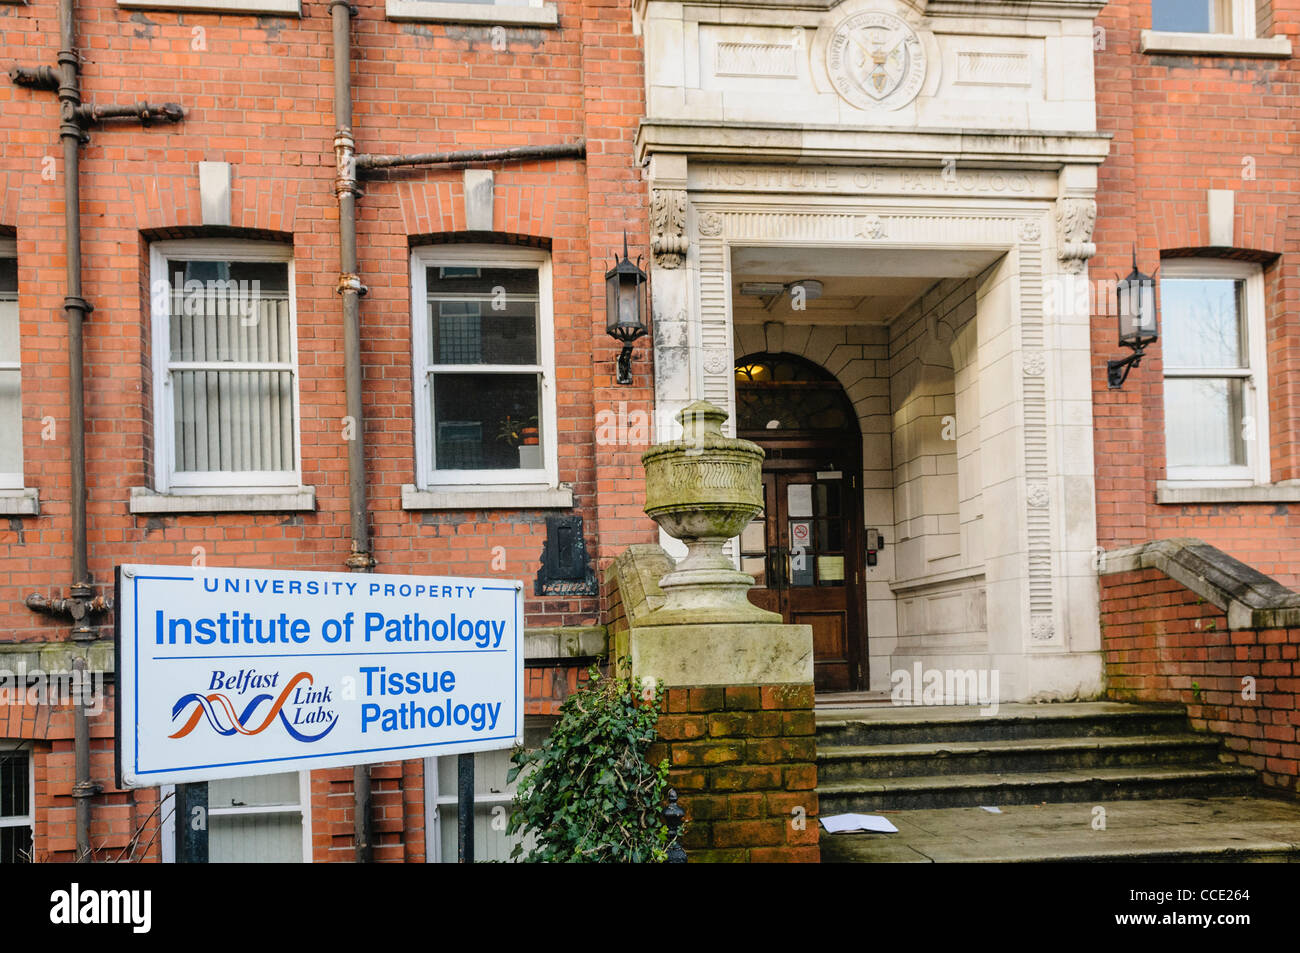 Institute of Pathology at Royal Victoria Hospital, Belfast - Stock Image